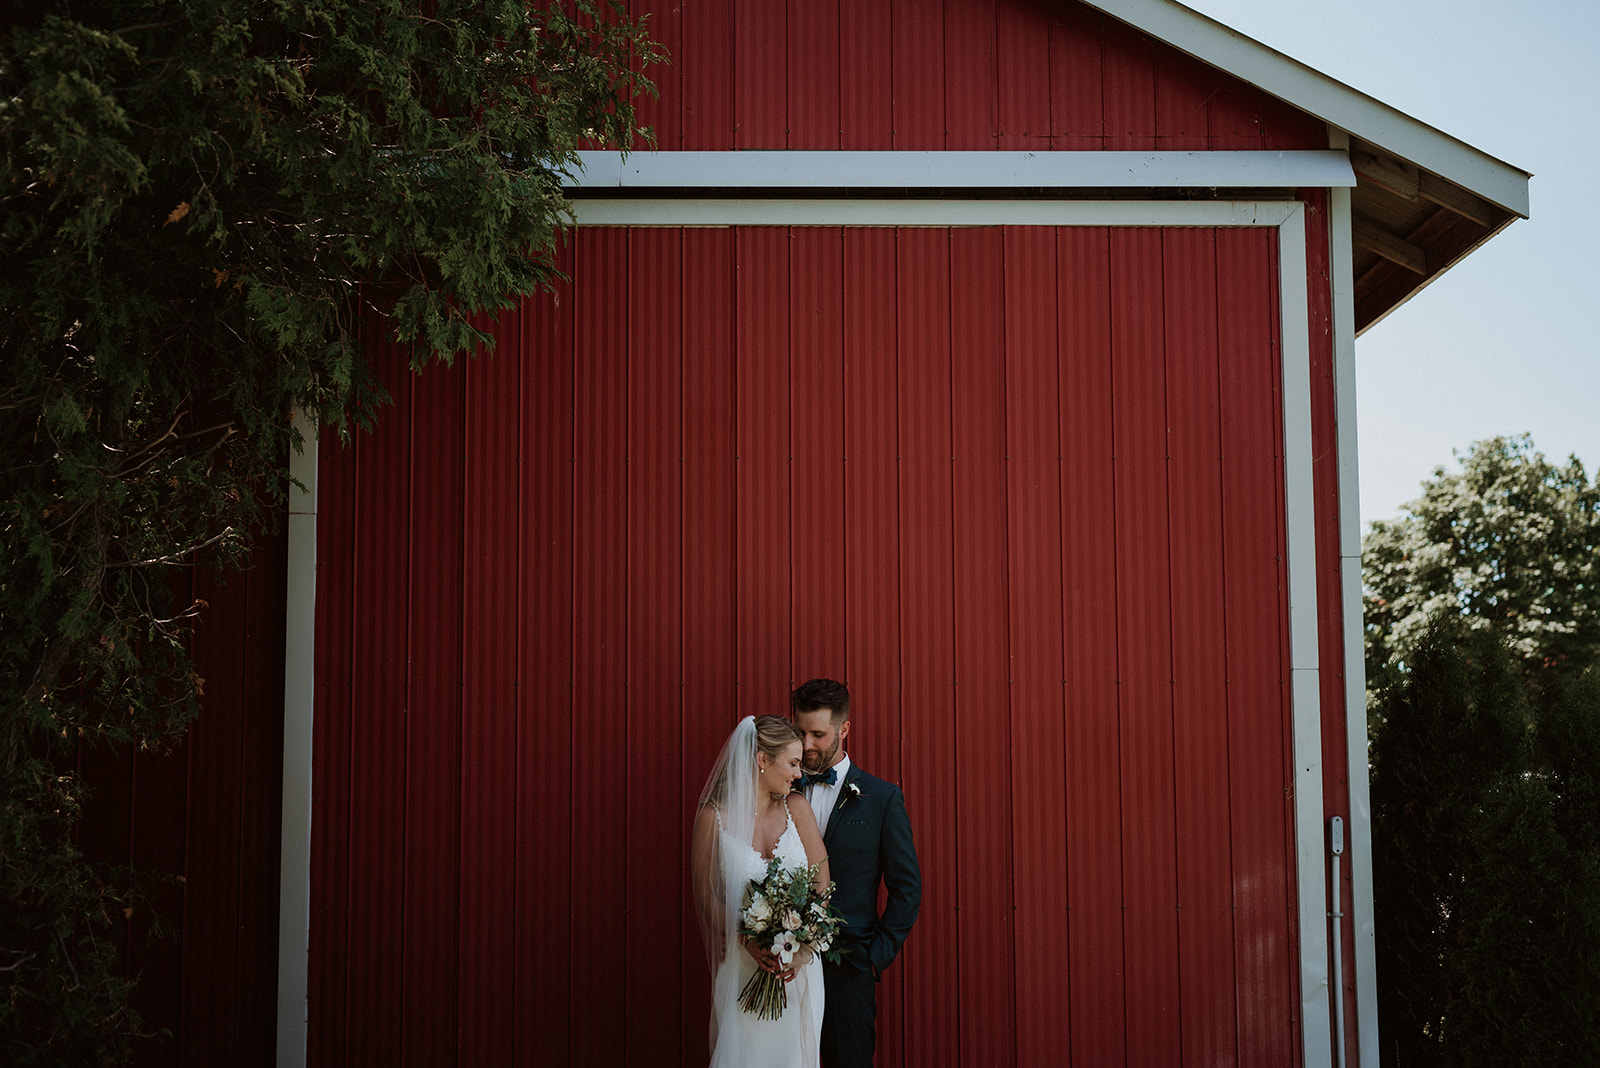 Taylor Hughes Photography at Hessenland Inn & Schatz Winery